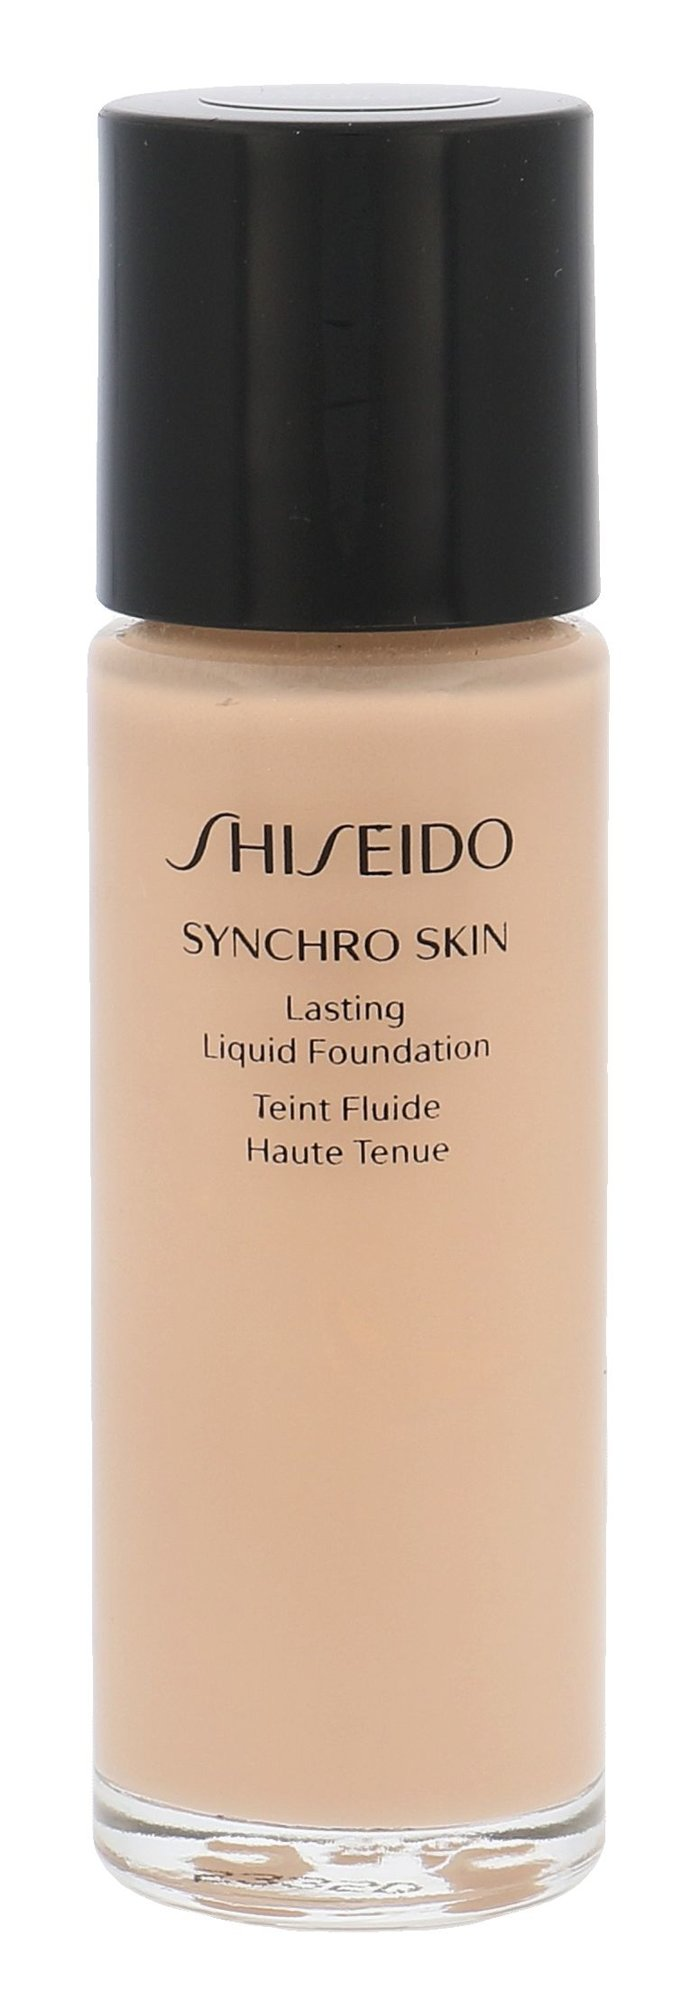 Shiseido Synchro Skin Cosmetic 15ml Neutral 3